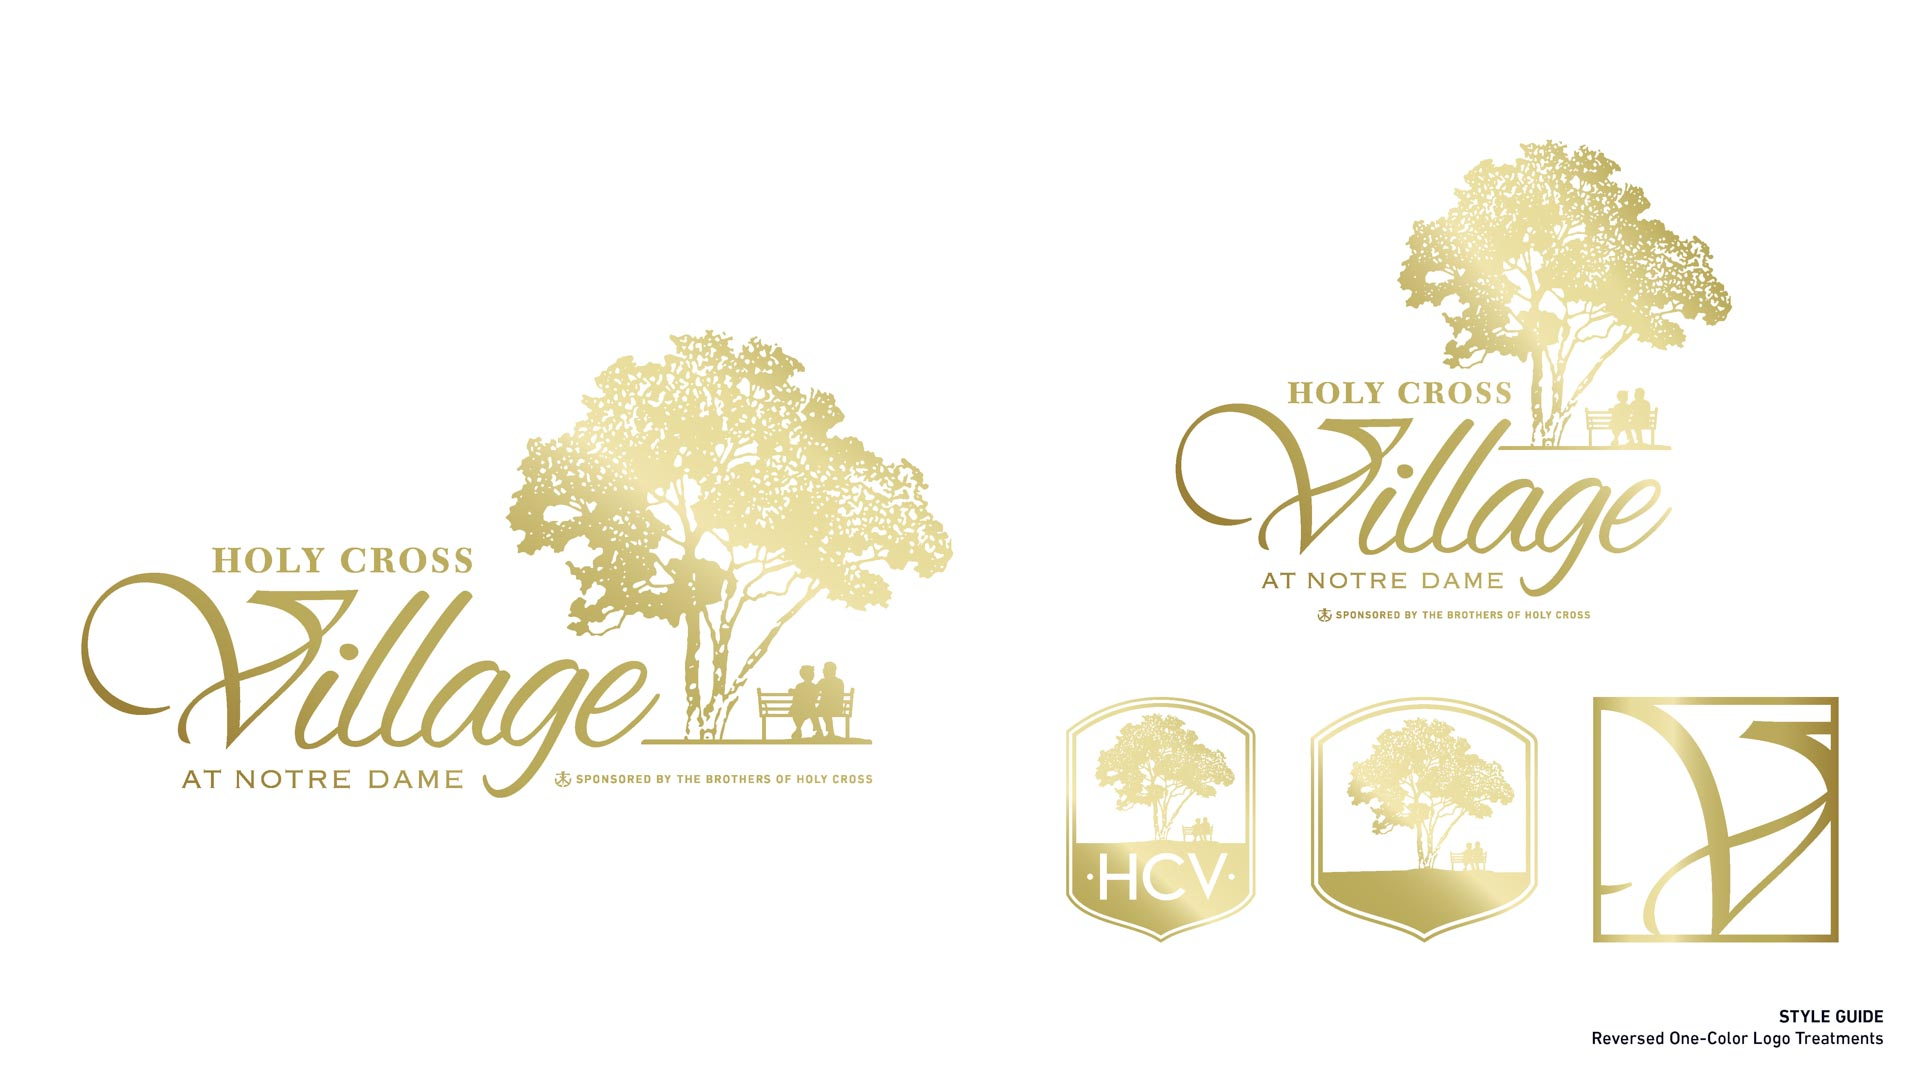 Holy Cross Village's Reversed One Color Logo Treatments